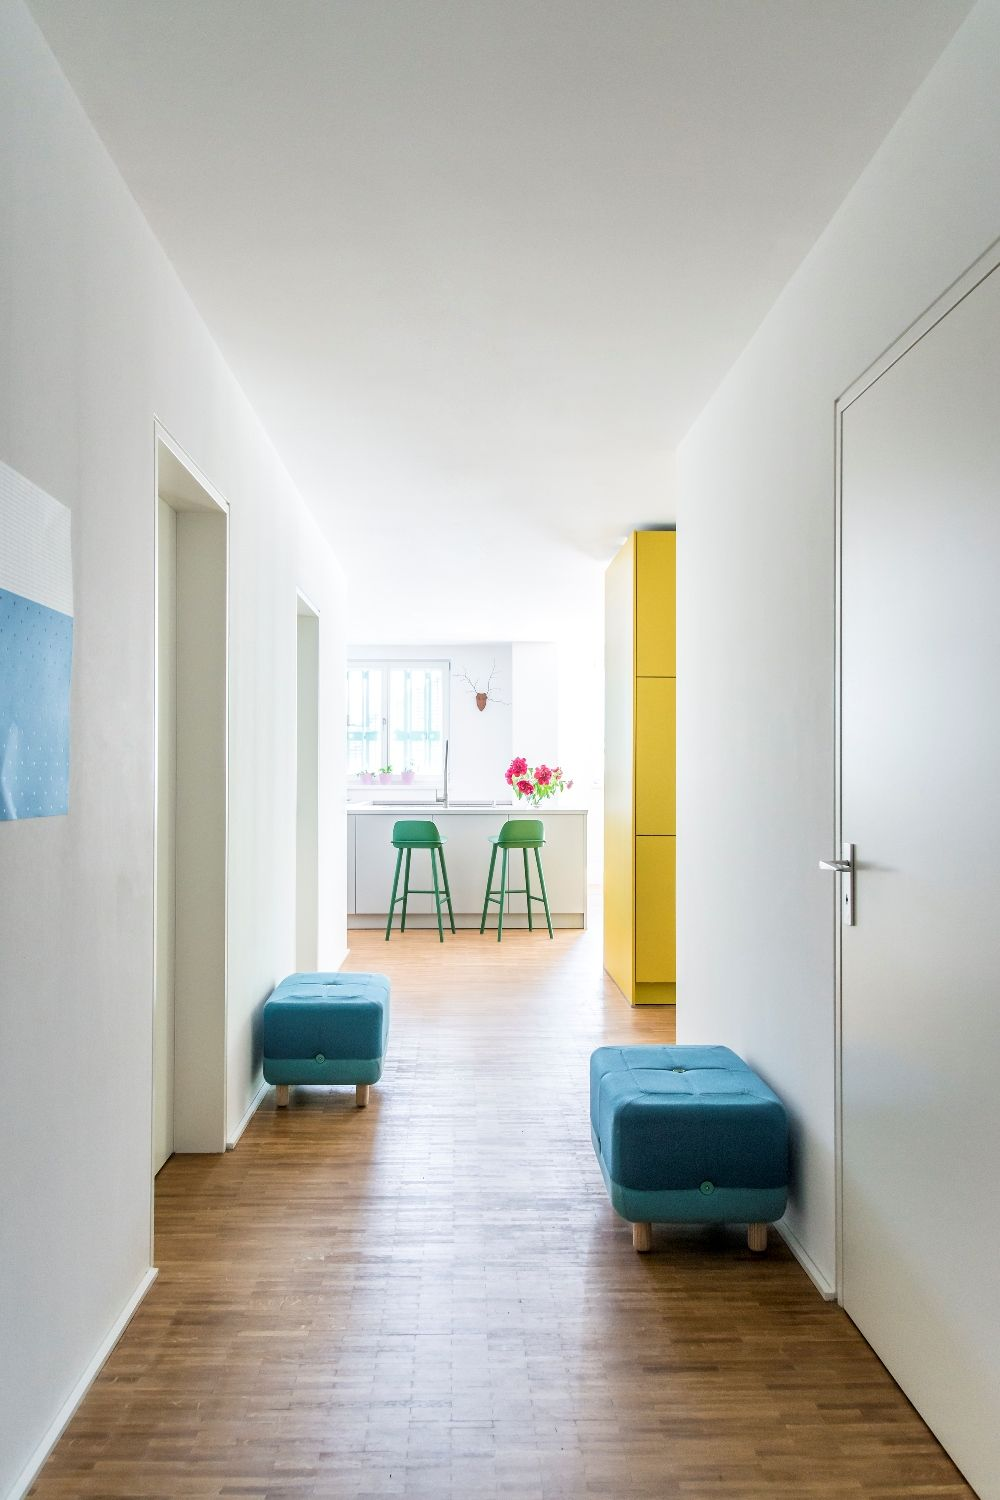 Modern Hallway Decoration Design Ideas. White wall trimming is universal decor method for all times